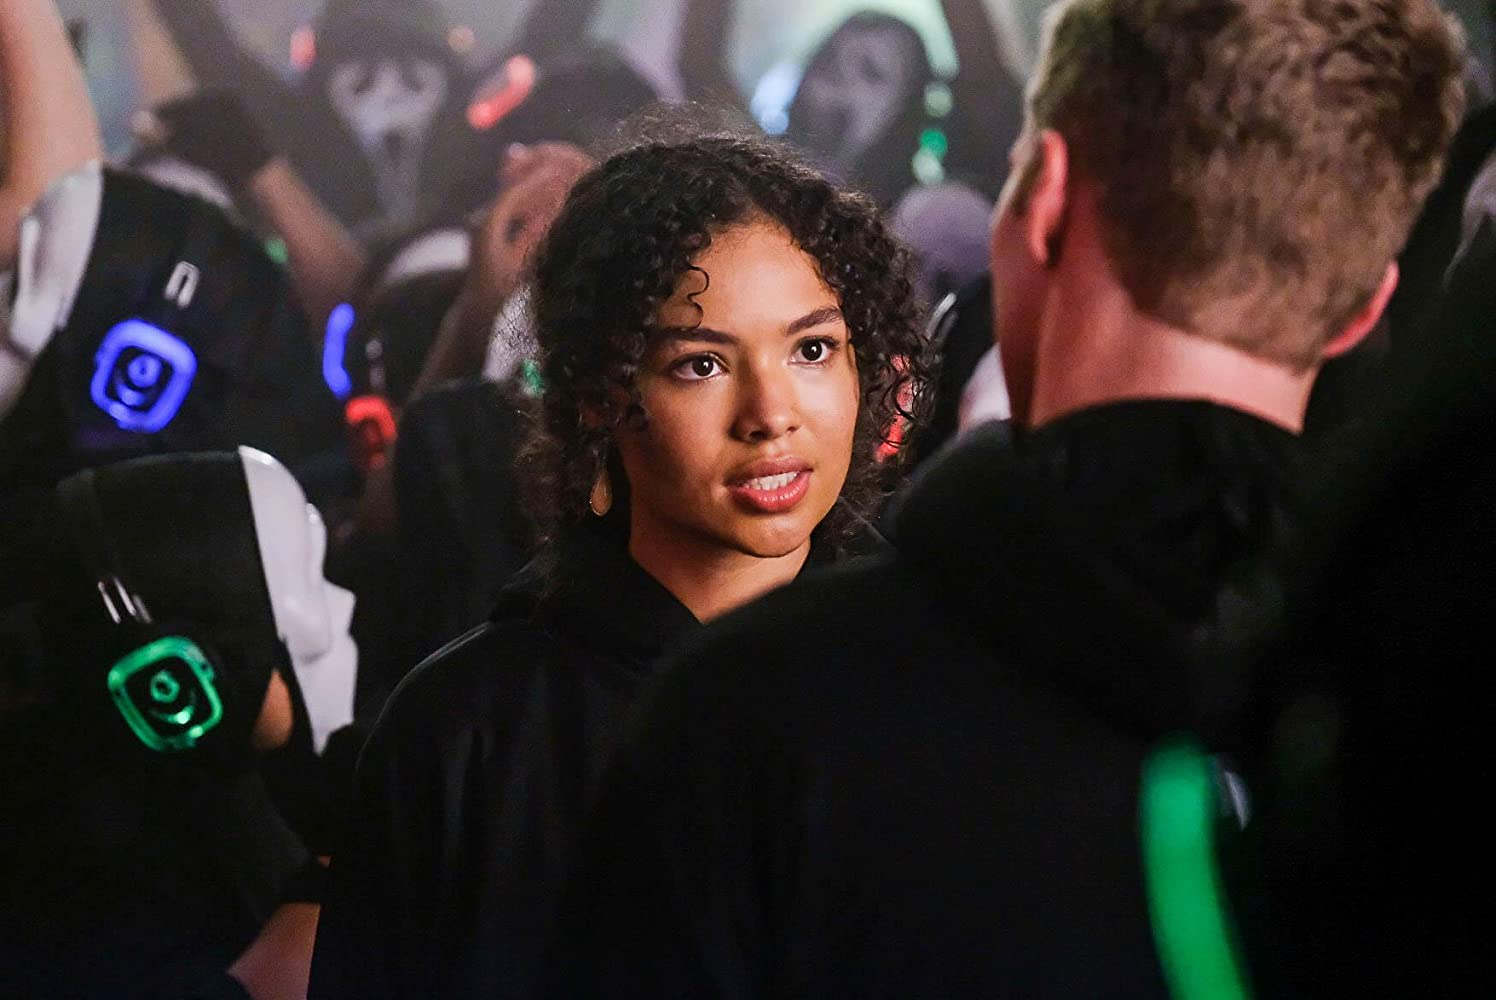 Jessica Sula in Scream: The TV Series (2015)